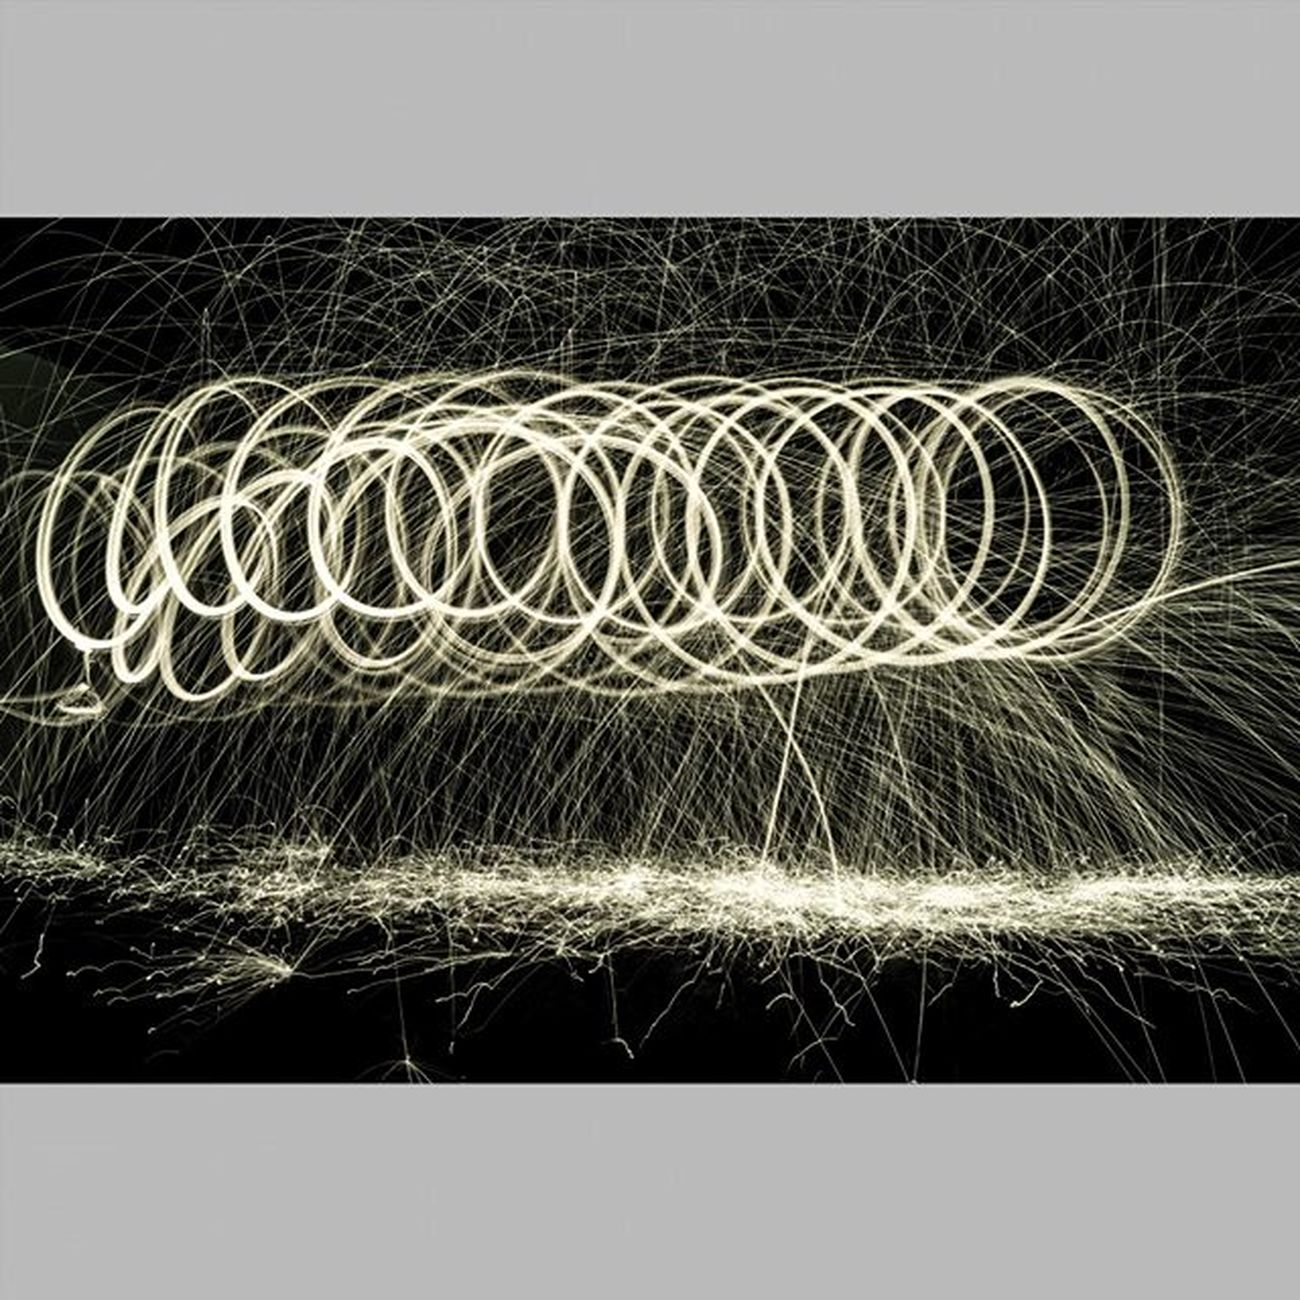 4 Light Lights Lightpainting Lightpaint Lightpaintingphotography LightPainters Lightpainter Lightpainted Lightpaintingbrushes Lightpaintingoftheday Lightpaintingart Lightpaintingphotos Longexposure Longexpo Longexposureoftheday Instalights Instalightpainting VSCO Vscocam Achadosdasemana Longaexposição Longaexposição Parededevidro Brasilfolk  vscolights